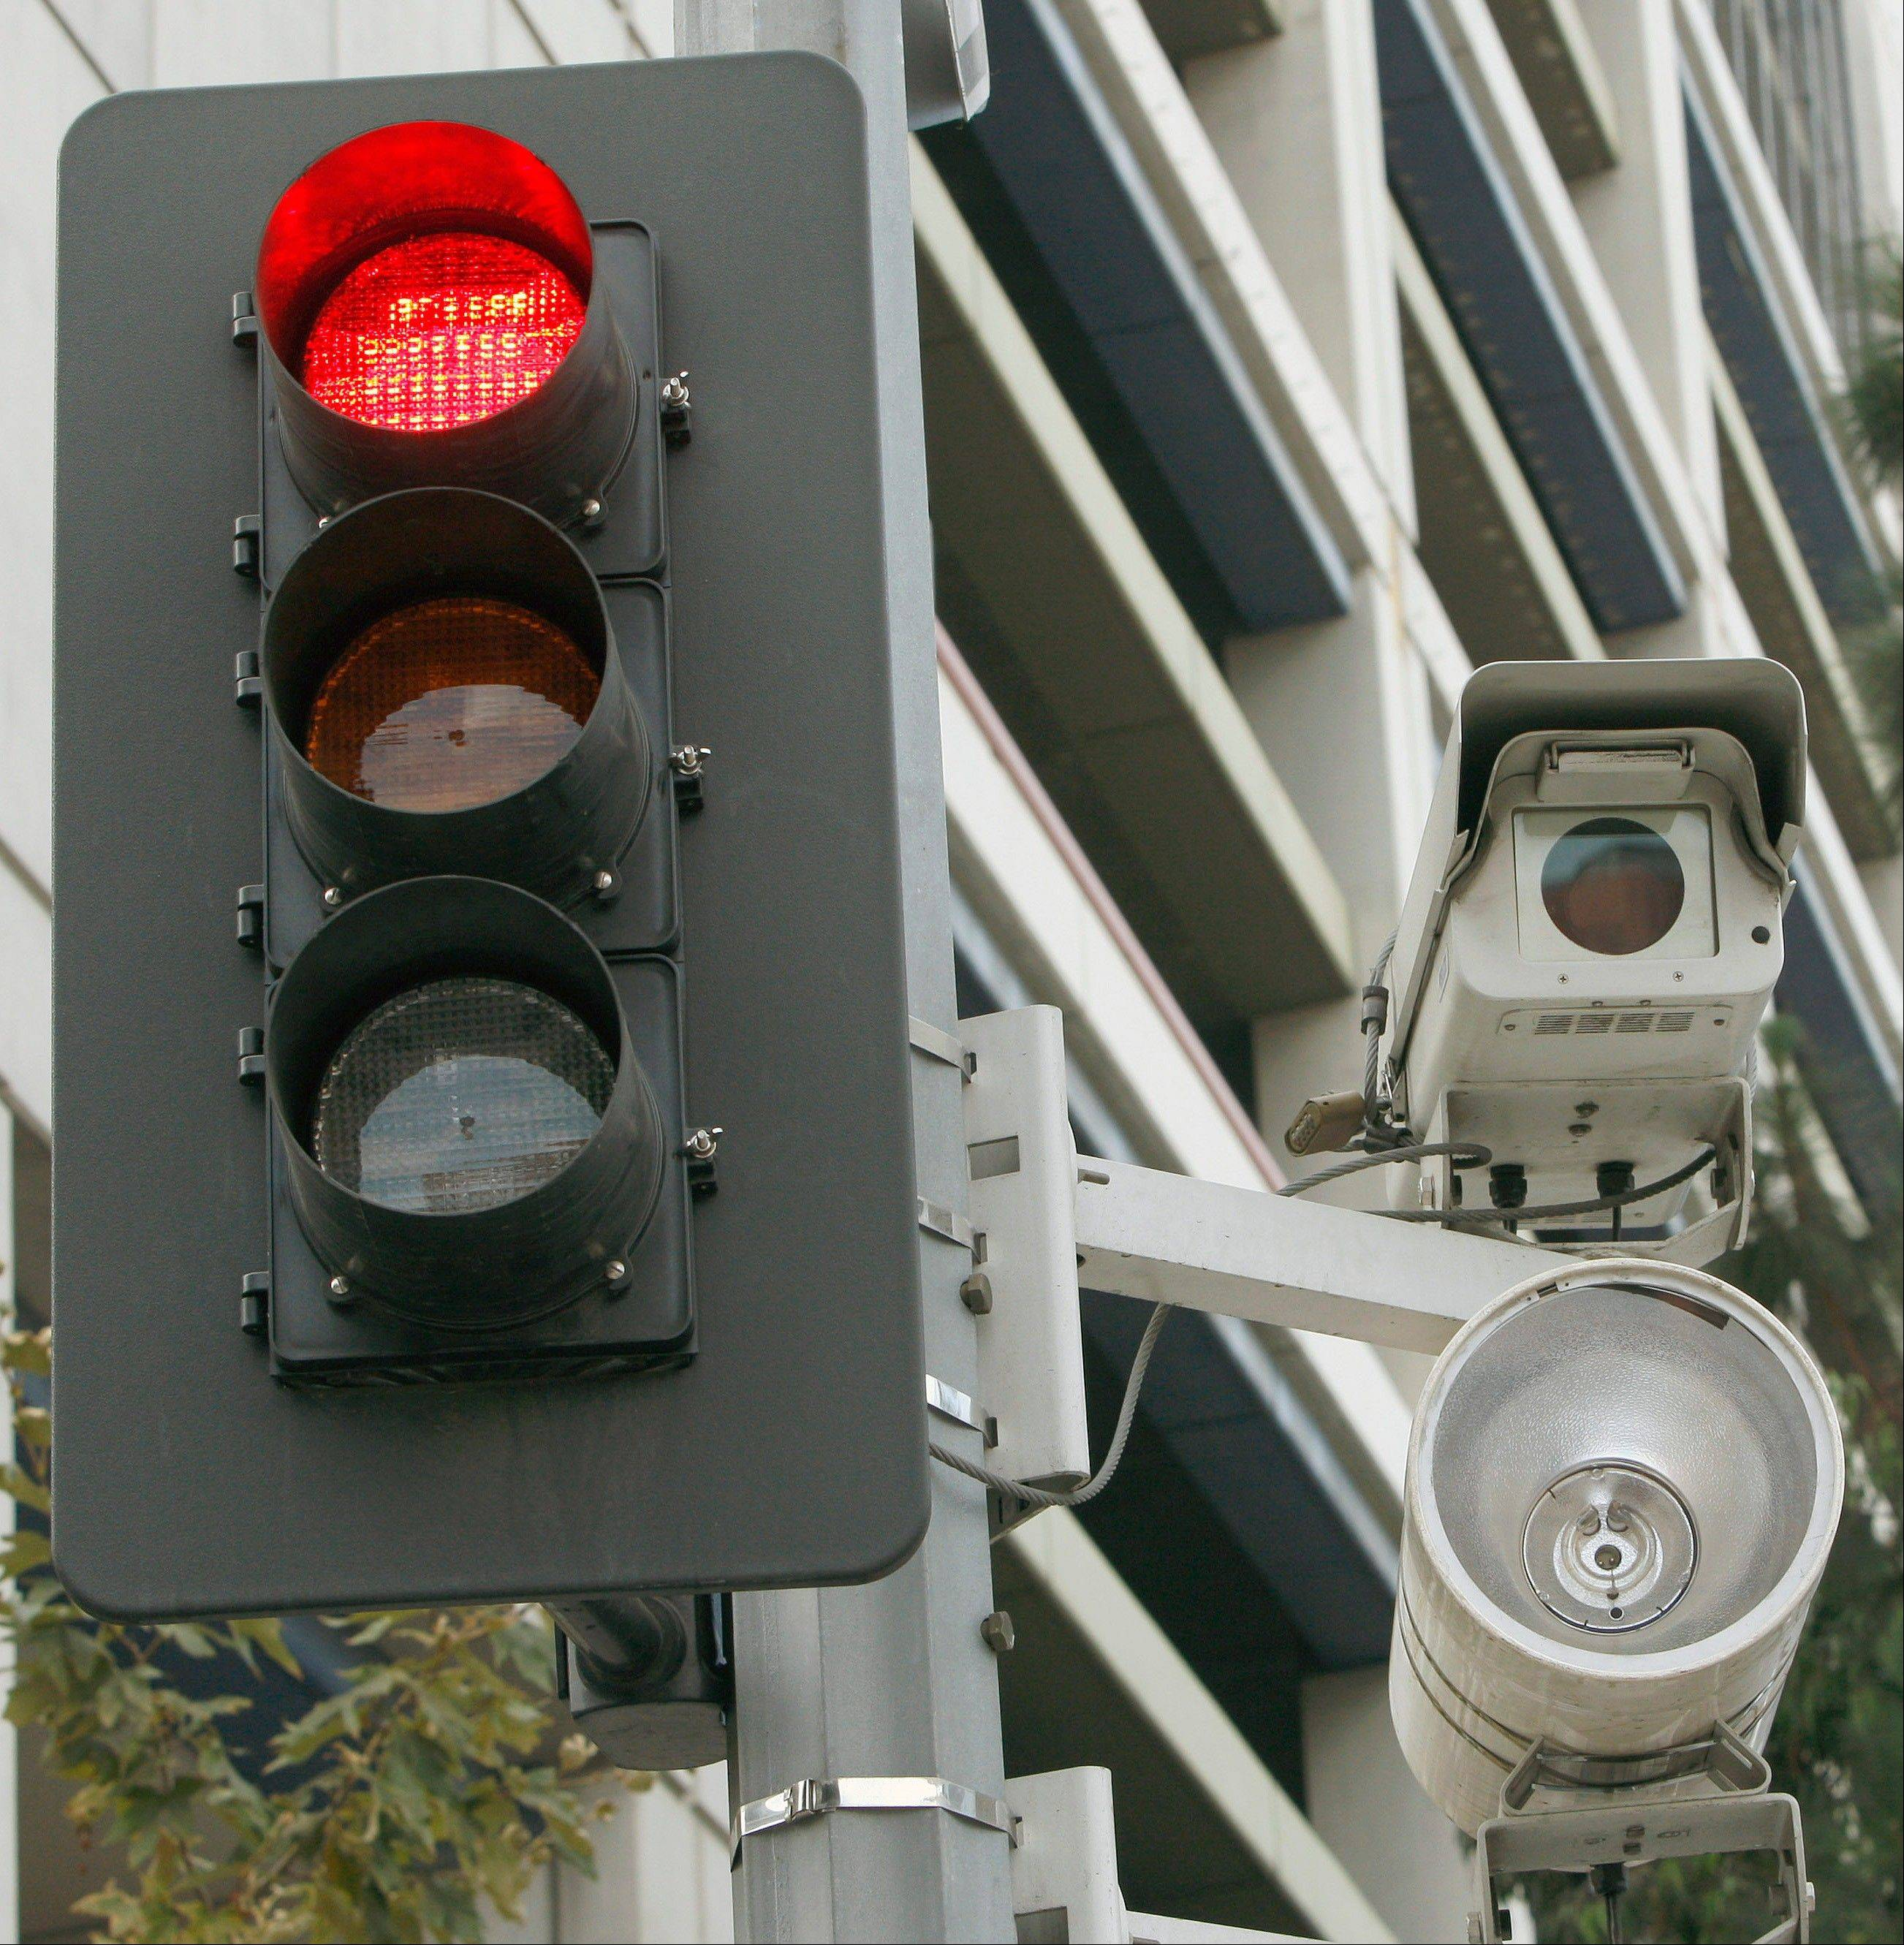 Study questions outsourcing traffic camera systems